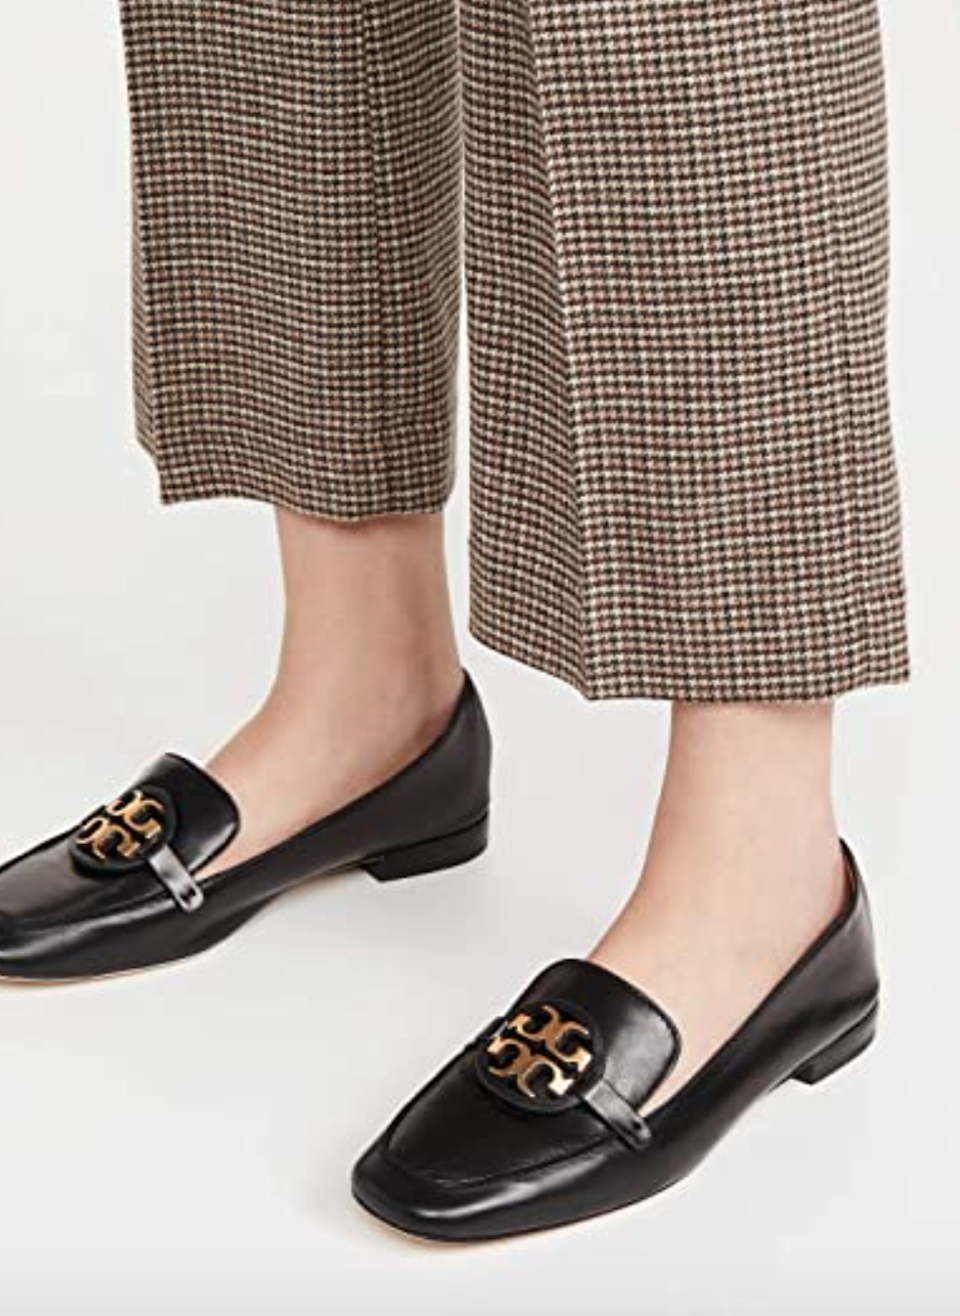 "<br><br><strong>Tory Burch</strong> Women's 15mm Metal Miller Loafers, $, available at <a href=""https://amzn.to/3ln2Xsn"" rel=""nofollow noopener"" target=""_blank"" data-ylk=""slk:Amazon Fashion"" class=""link rapid-noclick-resp"">Amazon Fashion</a>"